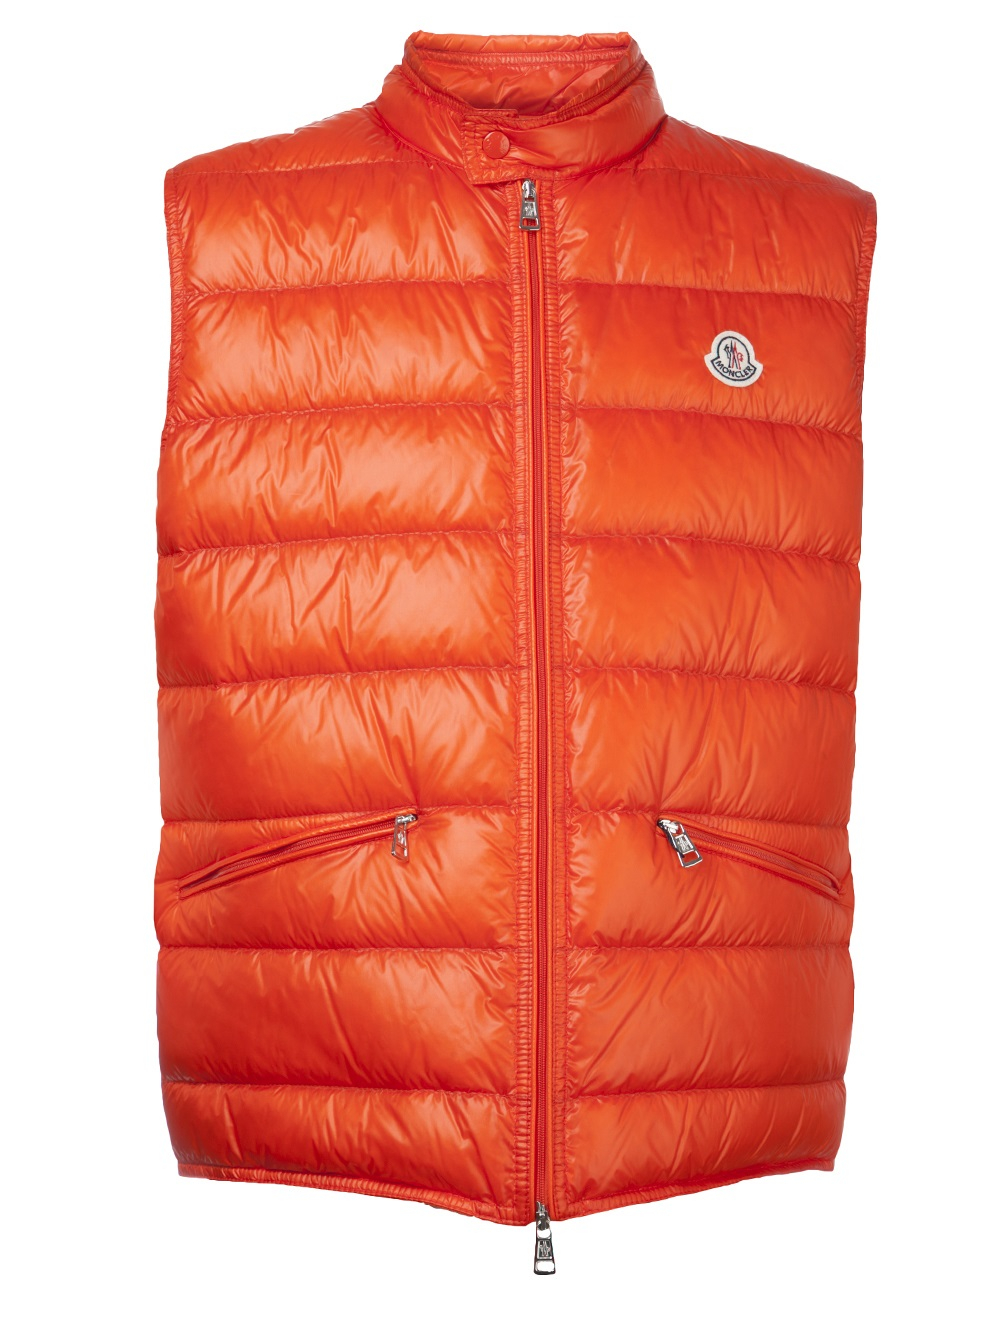 Moncler Puffer Vest In Orange For Men Lyst